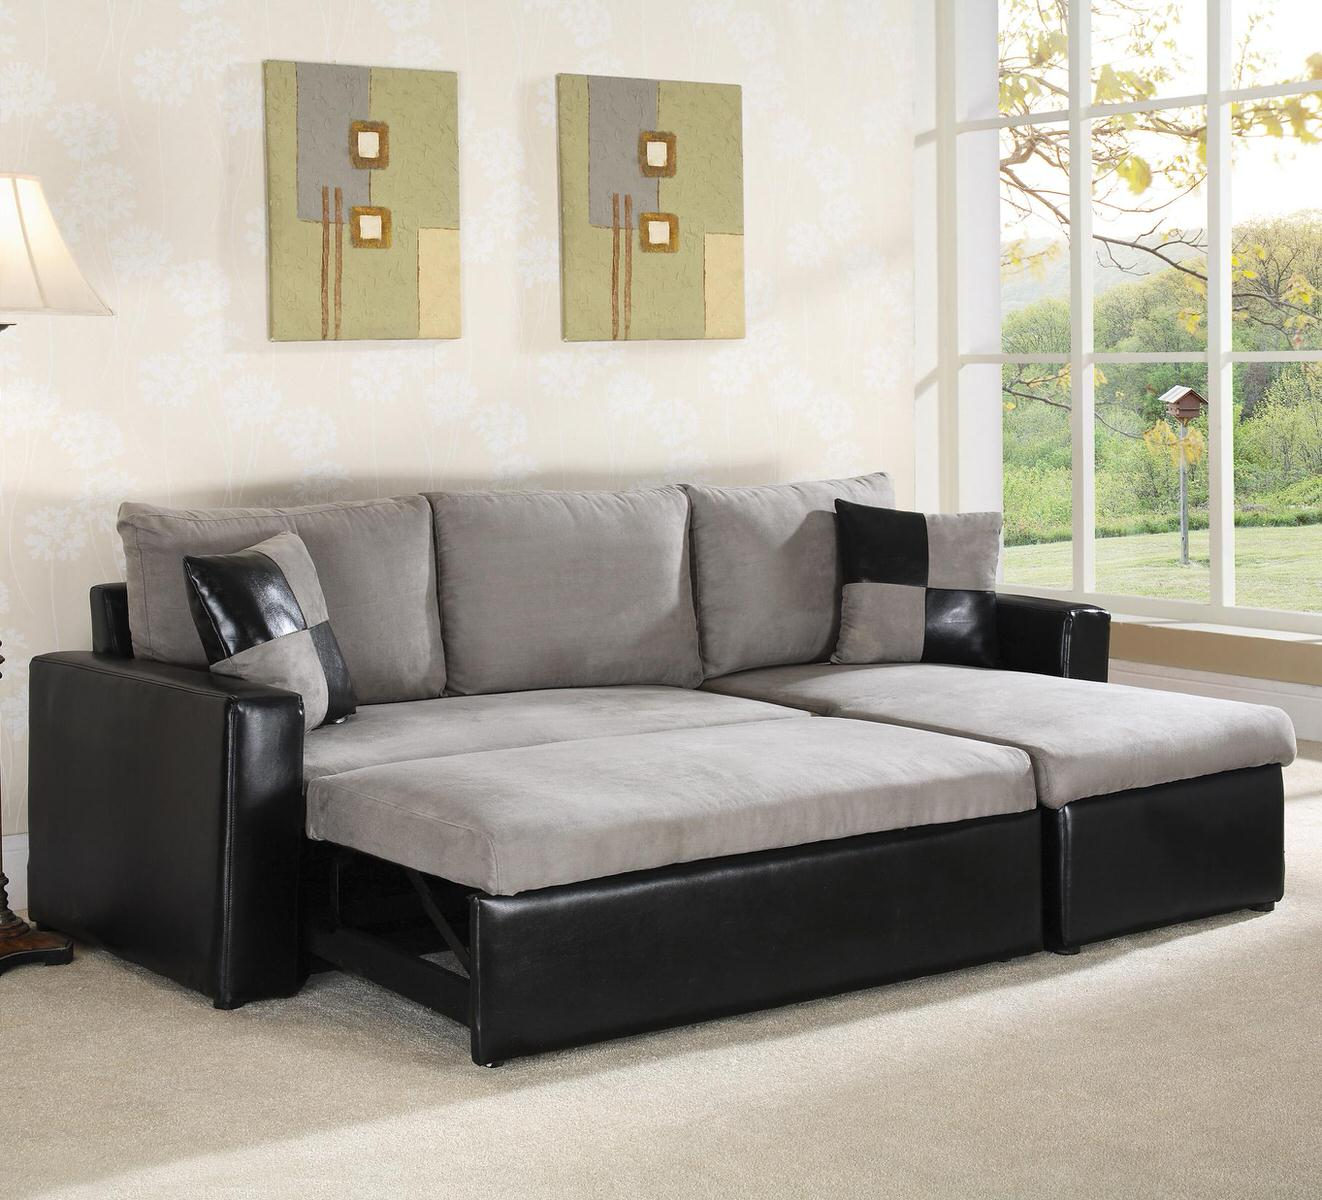 64008 sectional sofa sleeper by world imports for Sleeper sectional